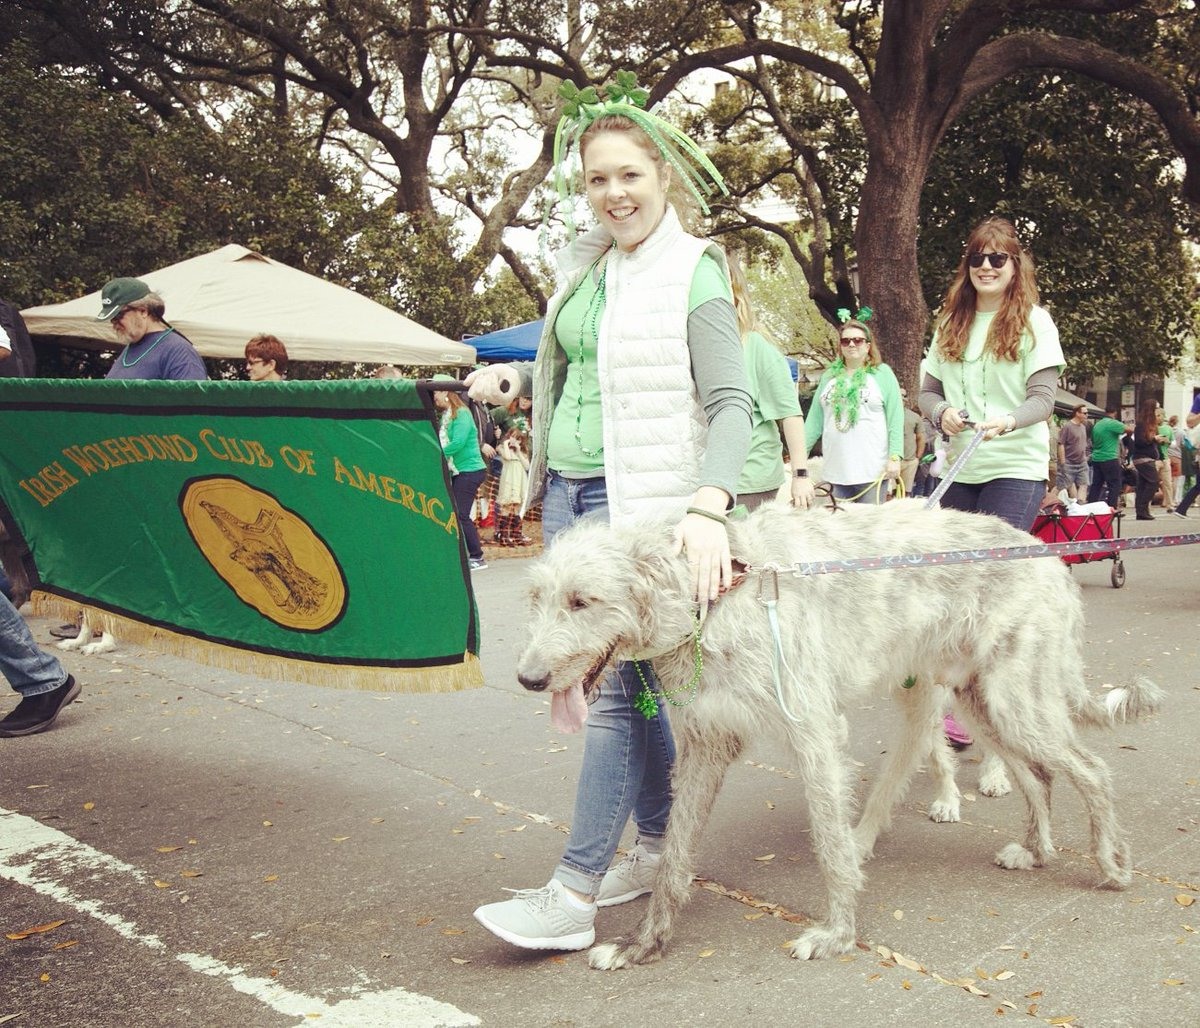 It's the dog days of summer but at least we're another month closer to St. Patrick's Day!   #savstpats #savannahstpats #savannah #stpatricksday #savannahstpatricksday #irish #irishamerican #parade<br>http://pic.twitter.com/D3aJpK2pEE